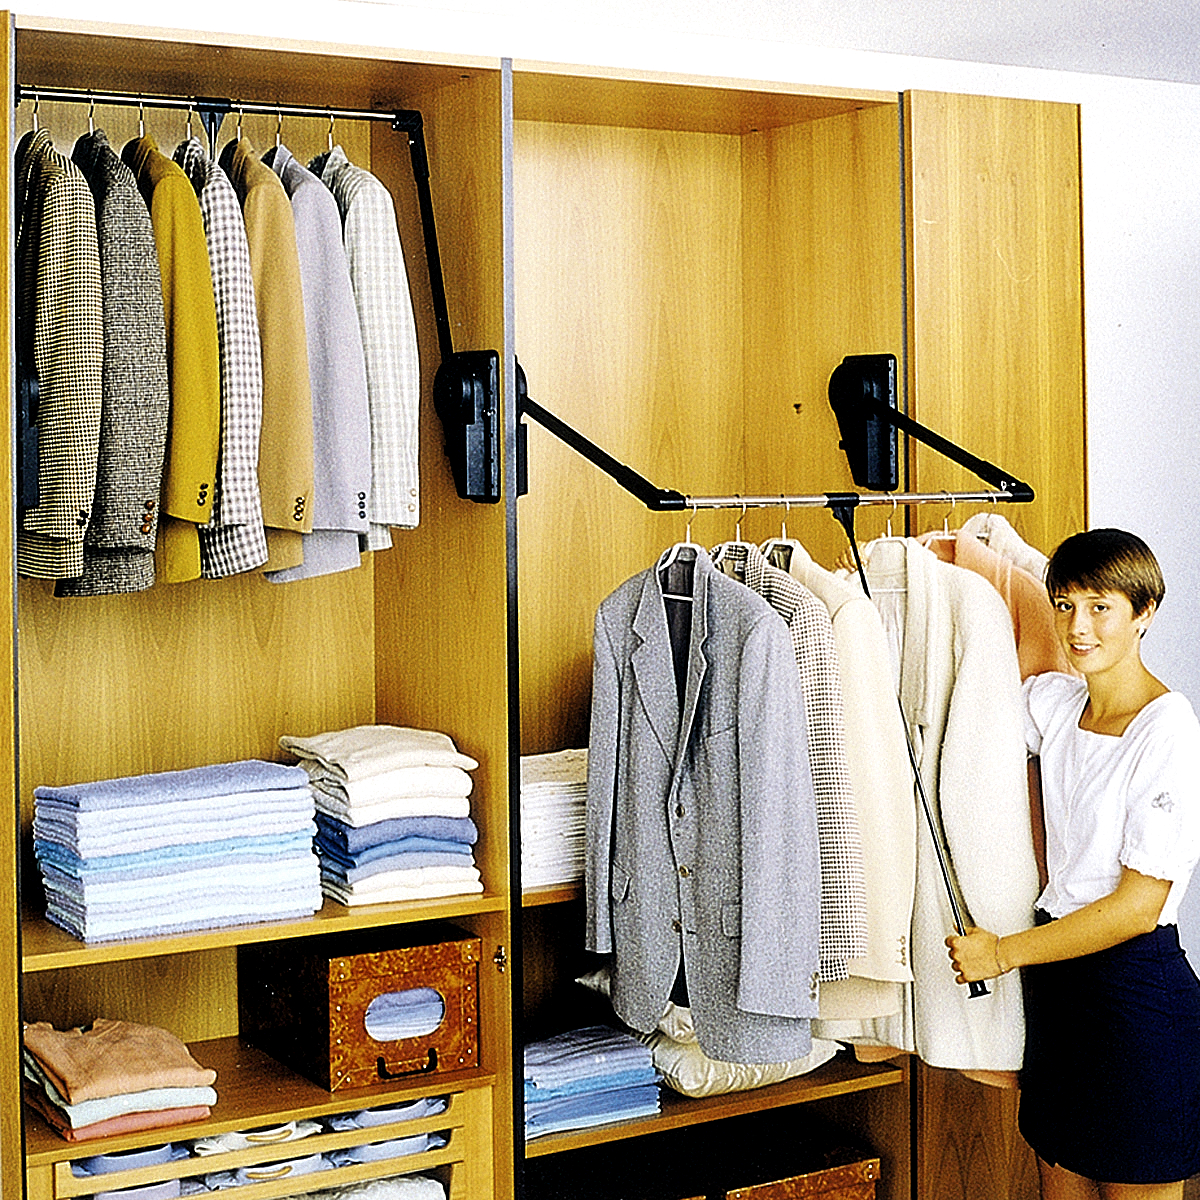 Outwaterus Pull Down Closet Rod With Adjustable Handle